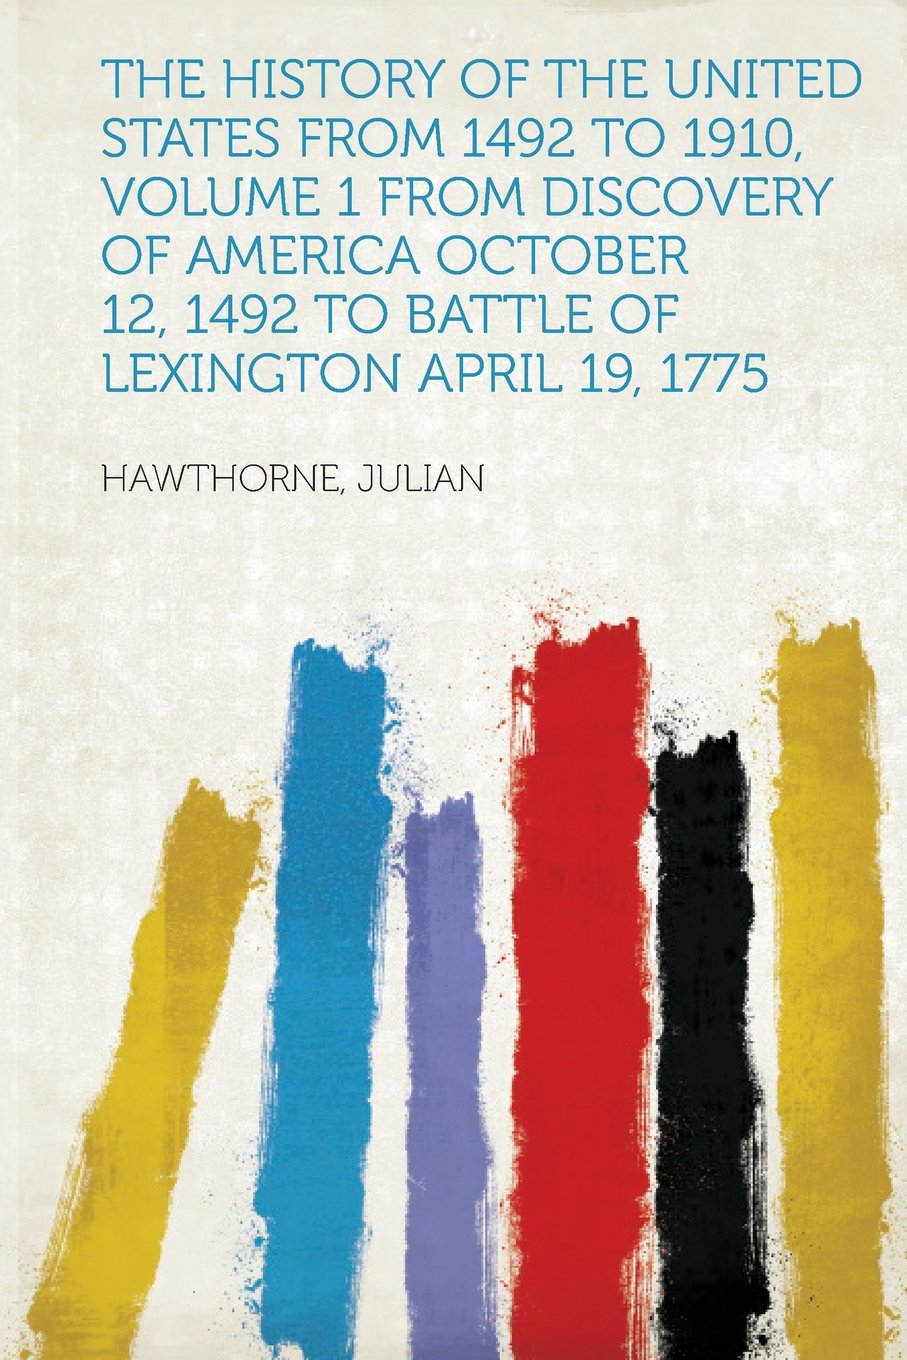 Read Online The History of the United States from 1492 to 1910, Volume 1 From Discovery of America October 12, 1492 to Battle of Lexington April 19, 1775 ebook